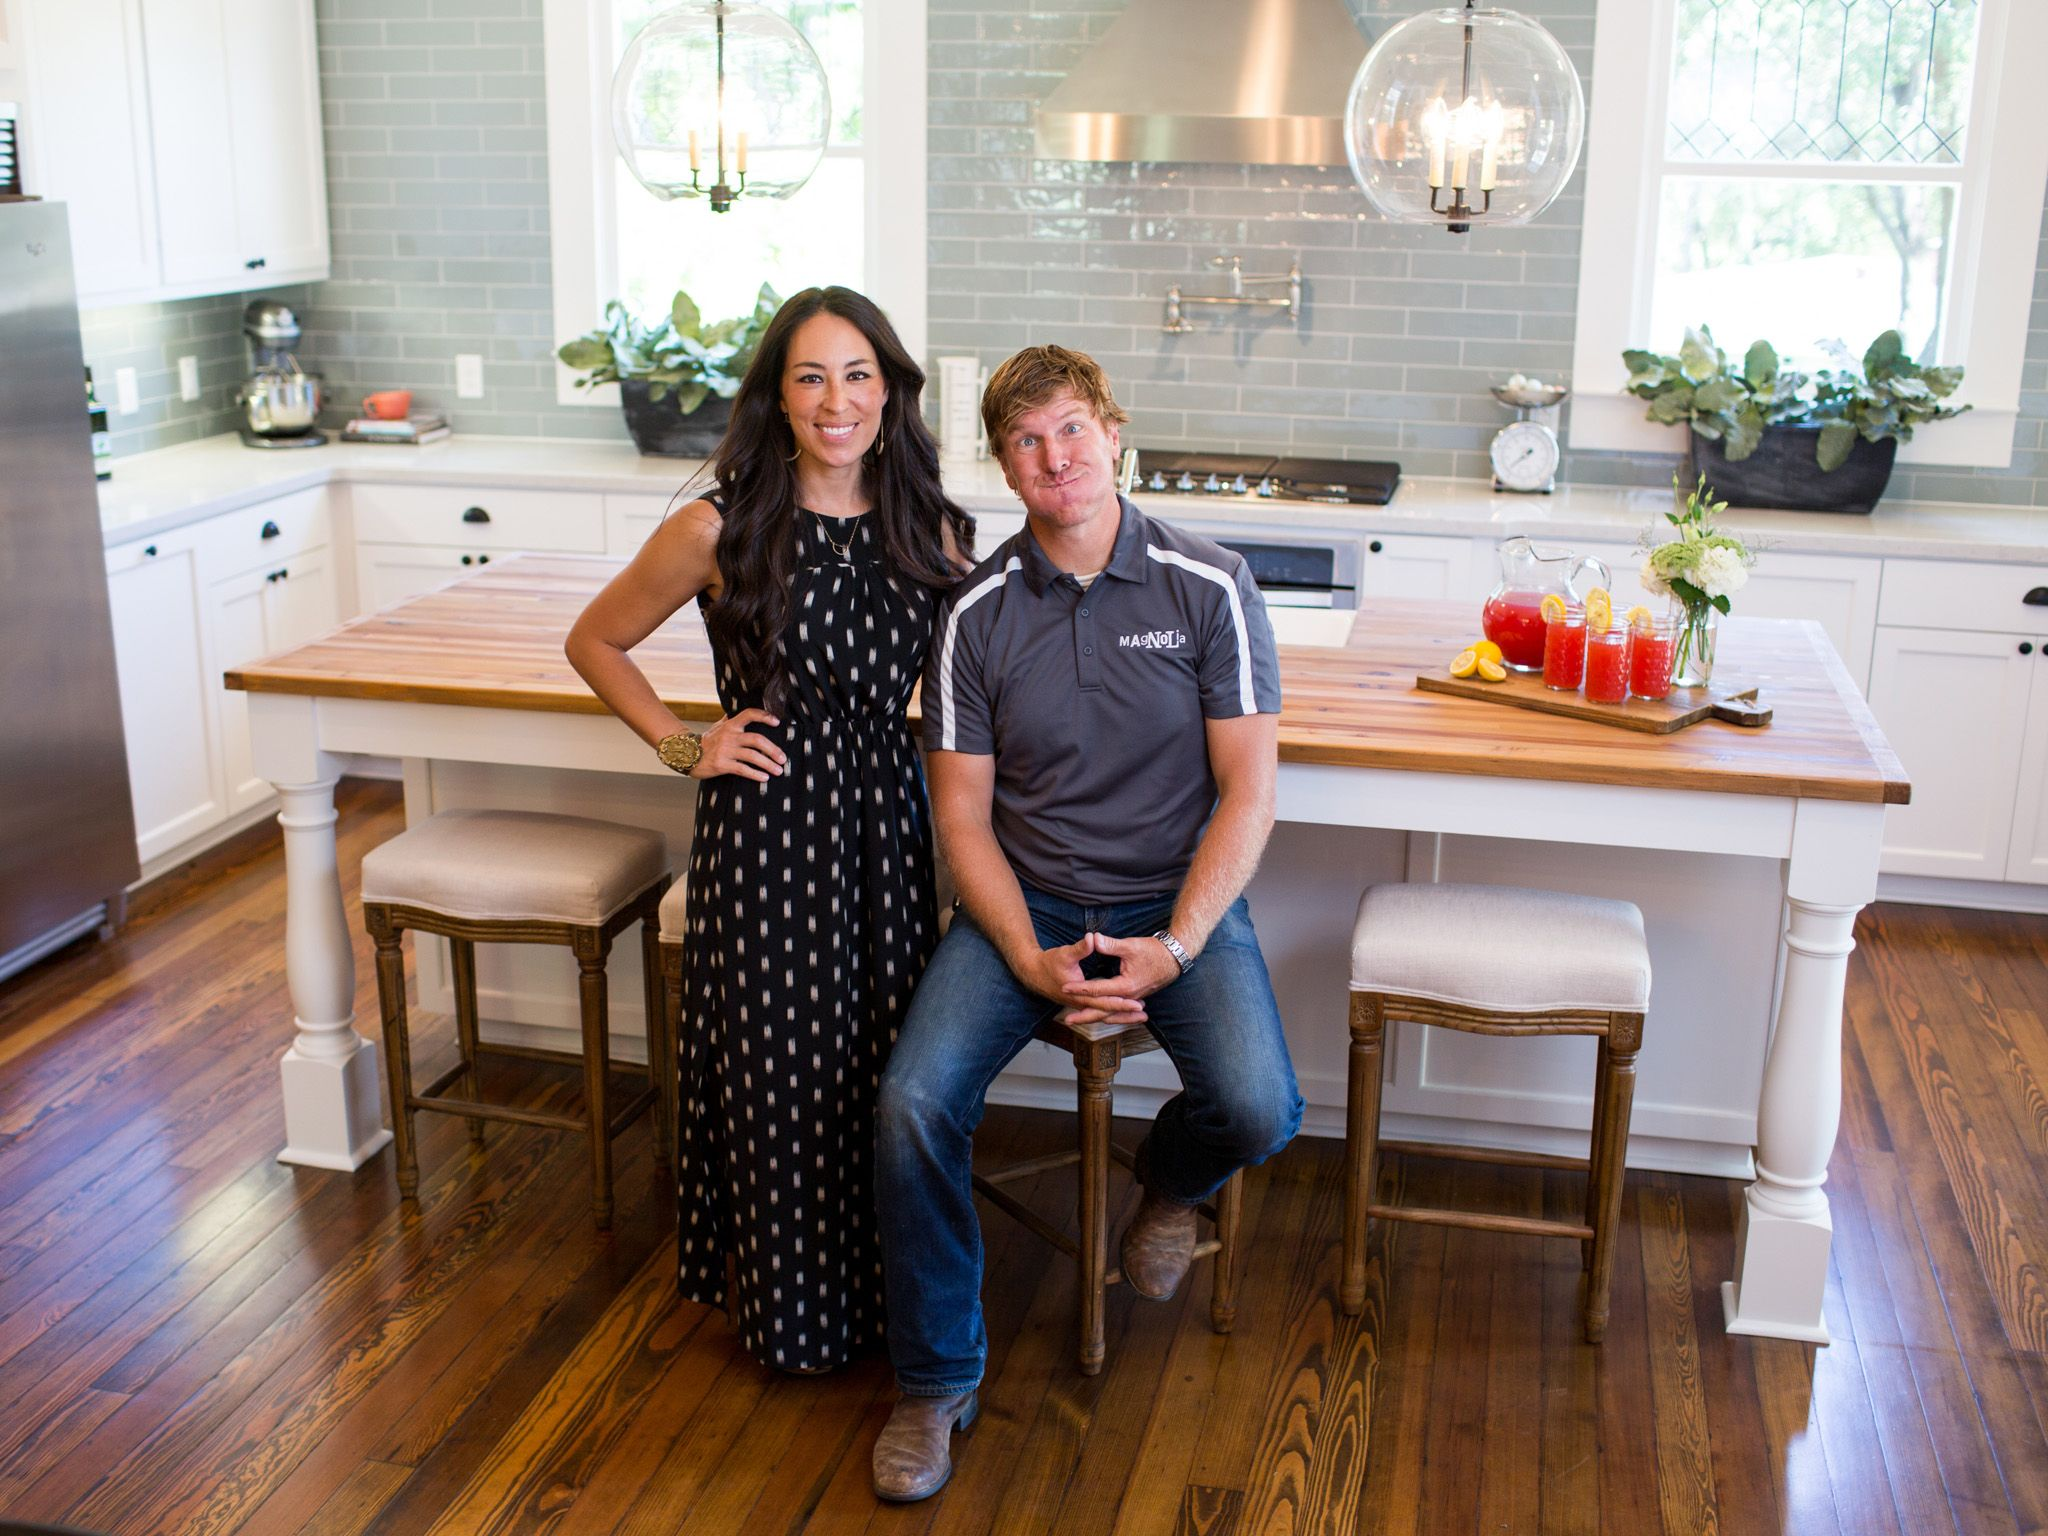 Skinnylap and Other Hints at What's to Come in Fixer Upper Season ...